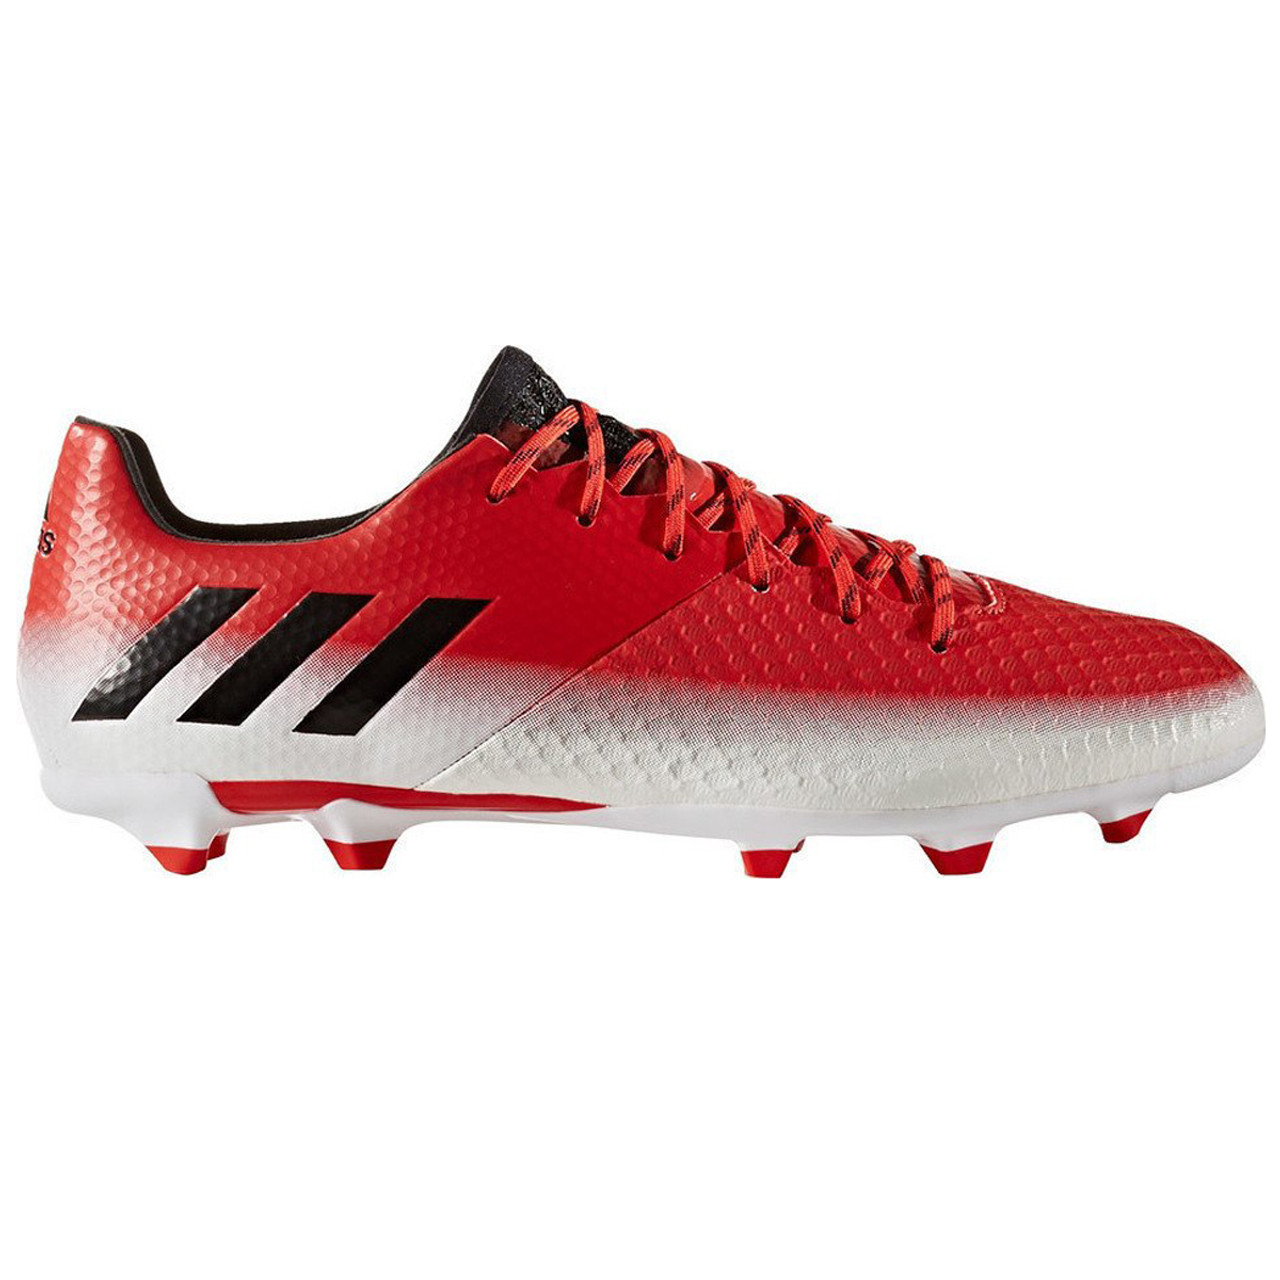 917ce2b362c Adidas Messi 16.2 FG Men s Soccer Cleats BA9144 - Red